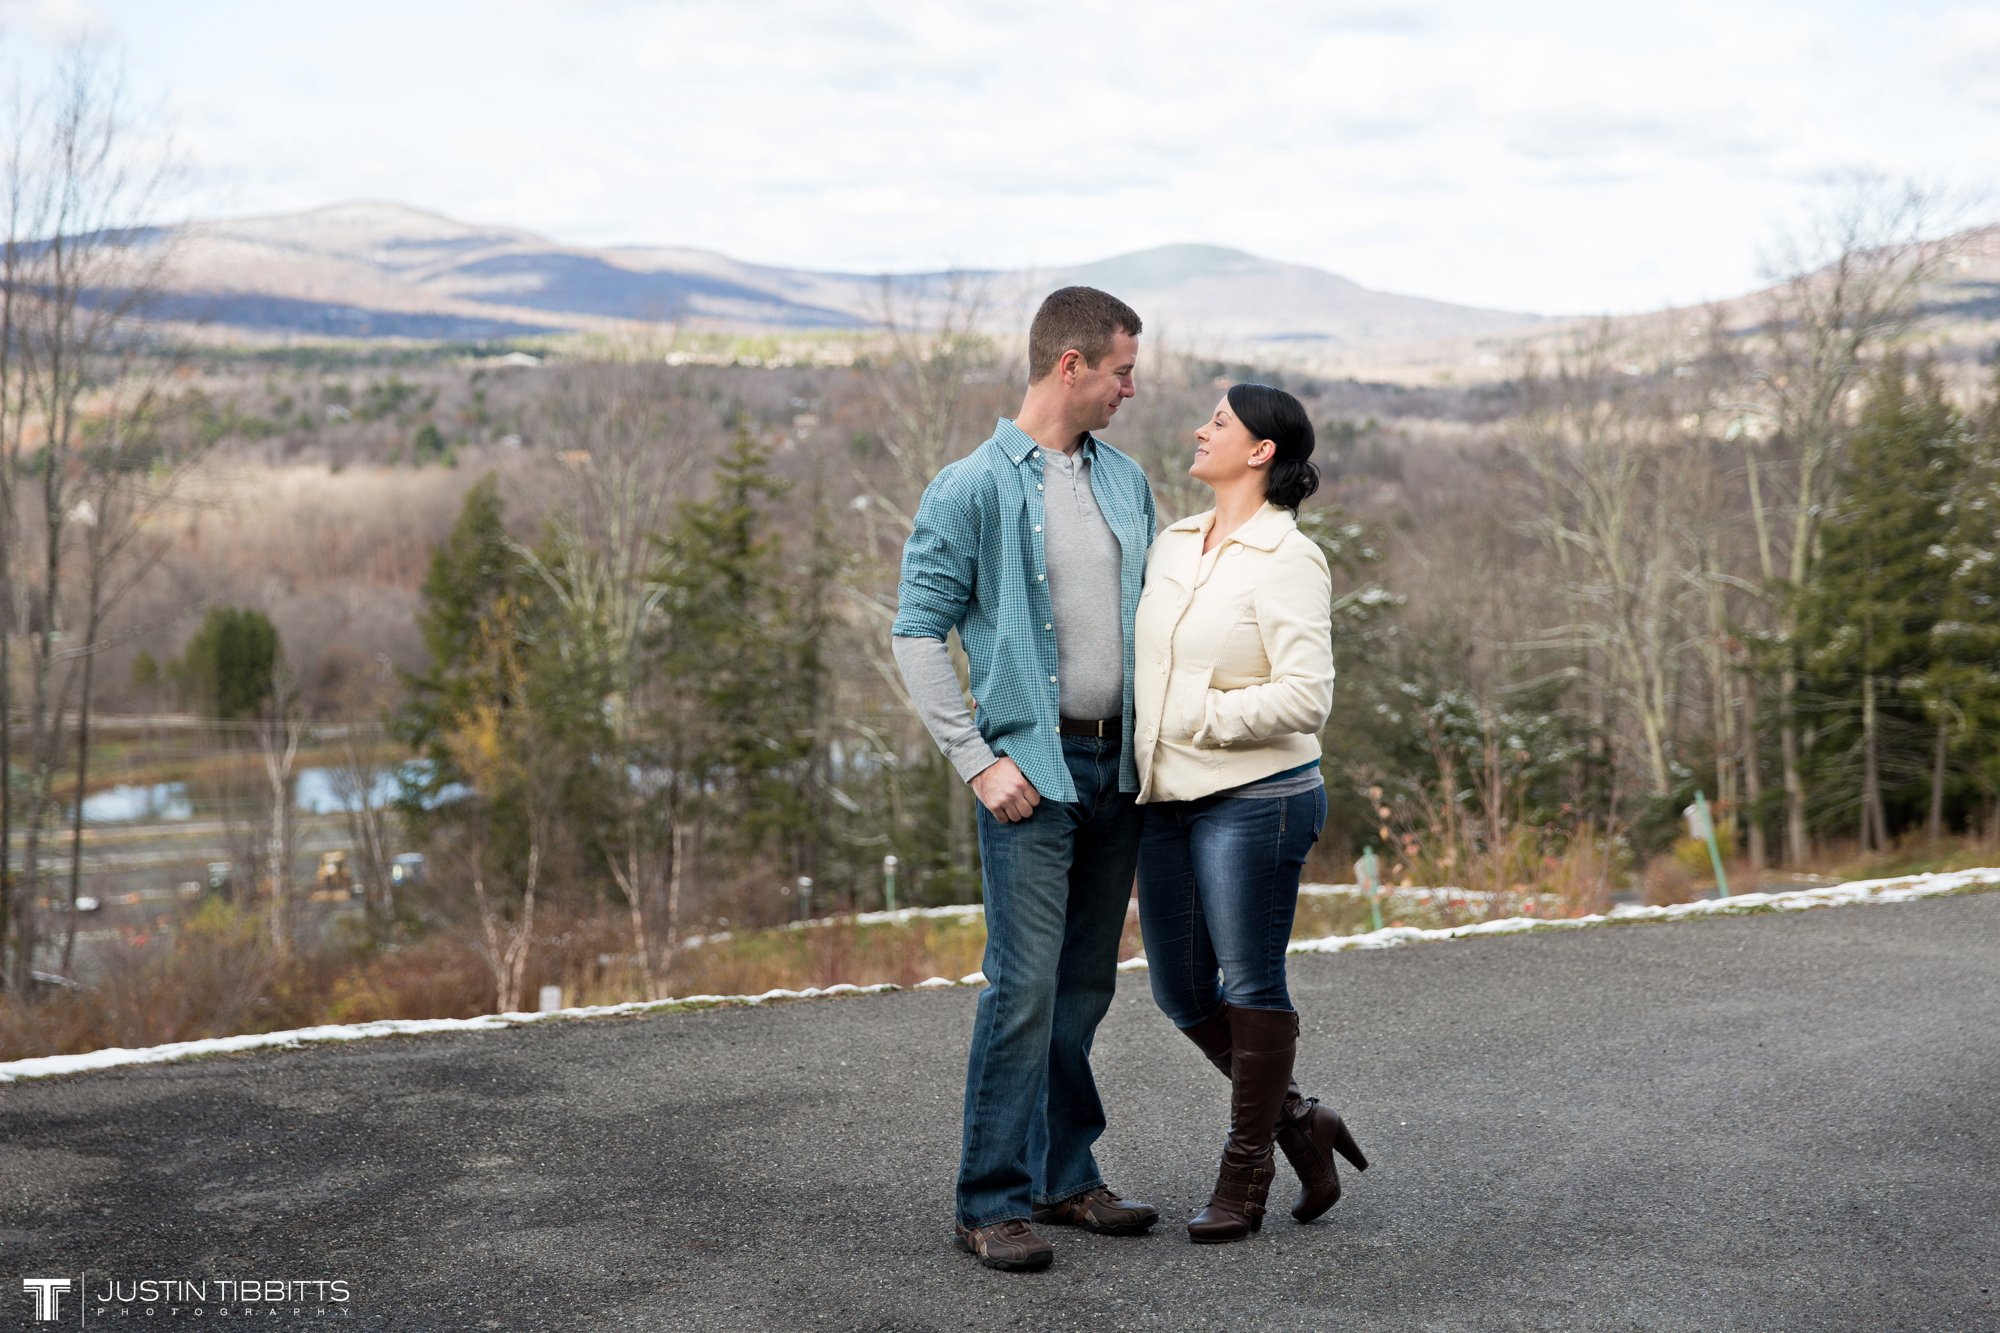 Justin Tibbitts Photography Kristie and Gregs Windham Mountain Resort Engagement Shoot-68